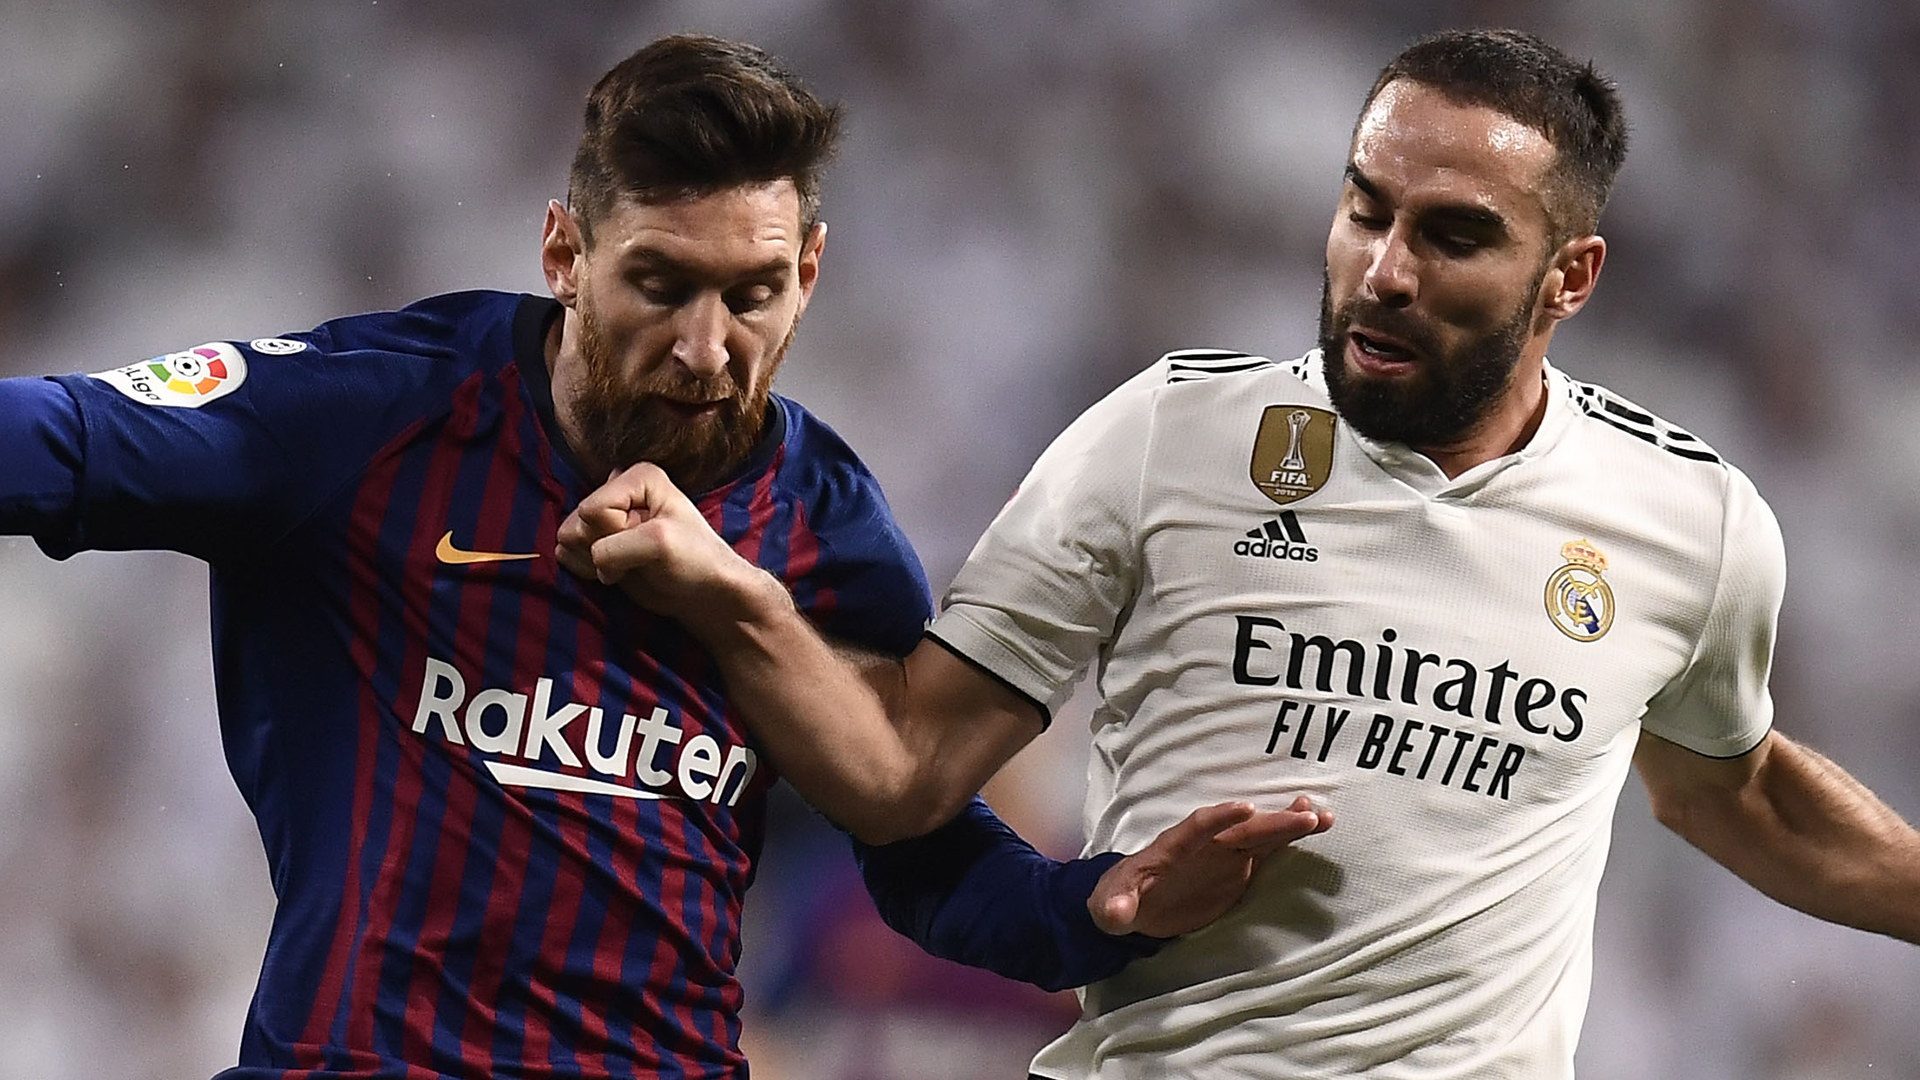 'I'd prefer if Barcelona didn't progress in the Champions League' - Carvajal hopes to see Real Madrid's arch-rivals exit Europe early